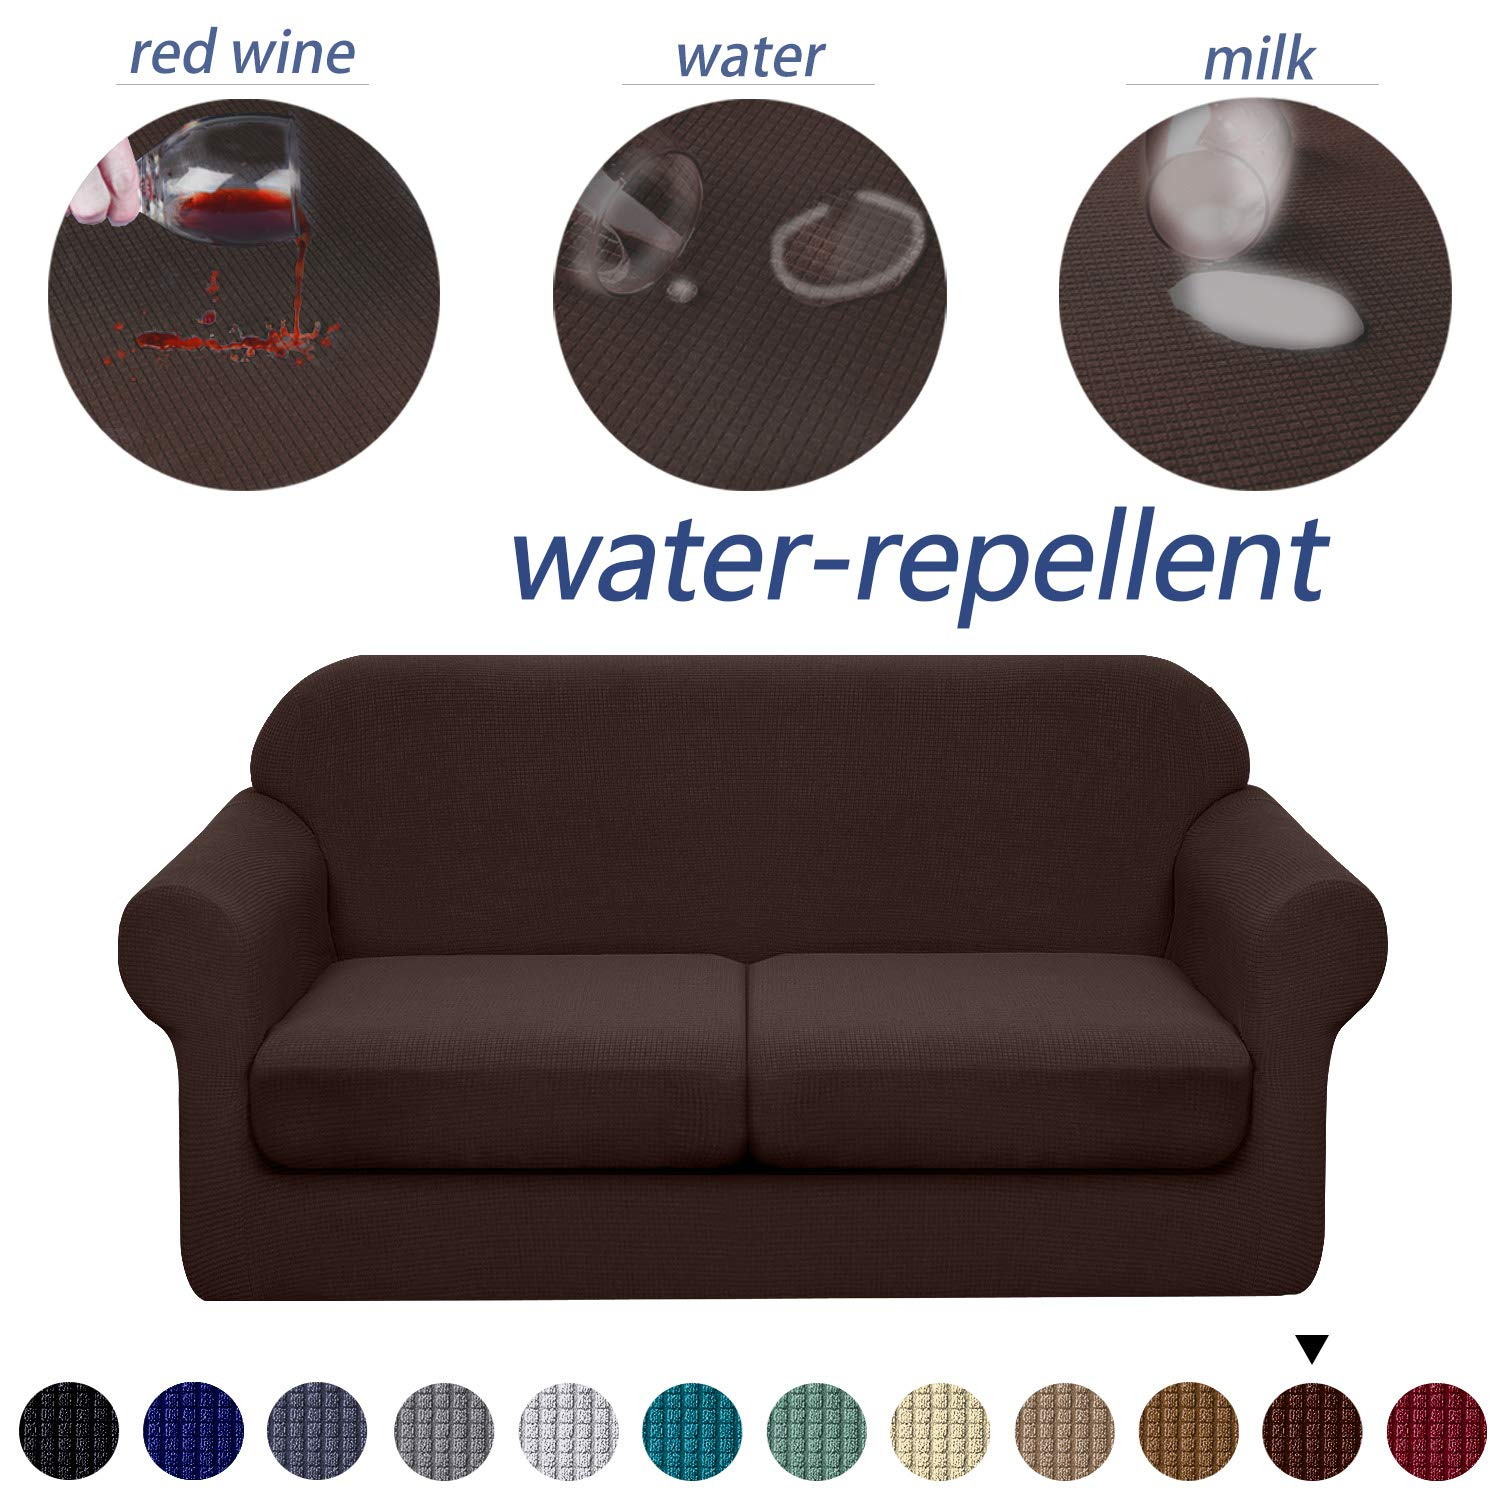 Granbest 3 Piece Premium Water Repellent Couch Slipcover For 2 Cushion Couch Super Soft Loveseat Sofa Covers High Stretch Separate Cushion Couch Covers For Dogs Furniture Cover Medium Chocolate